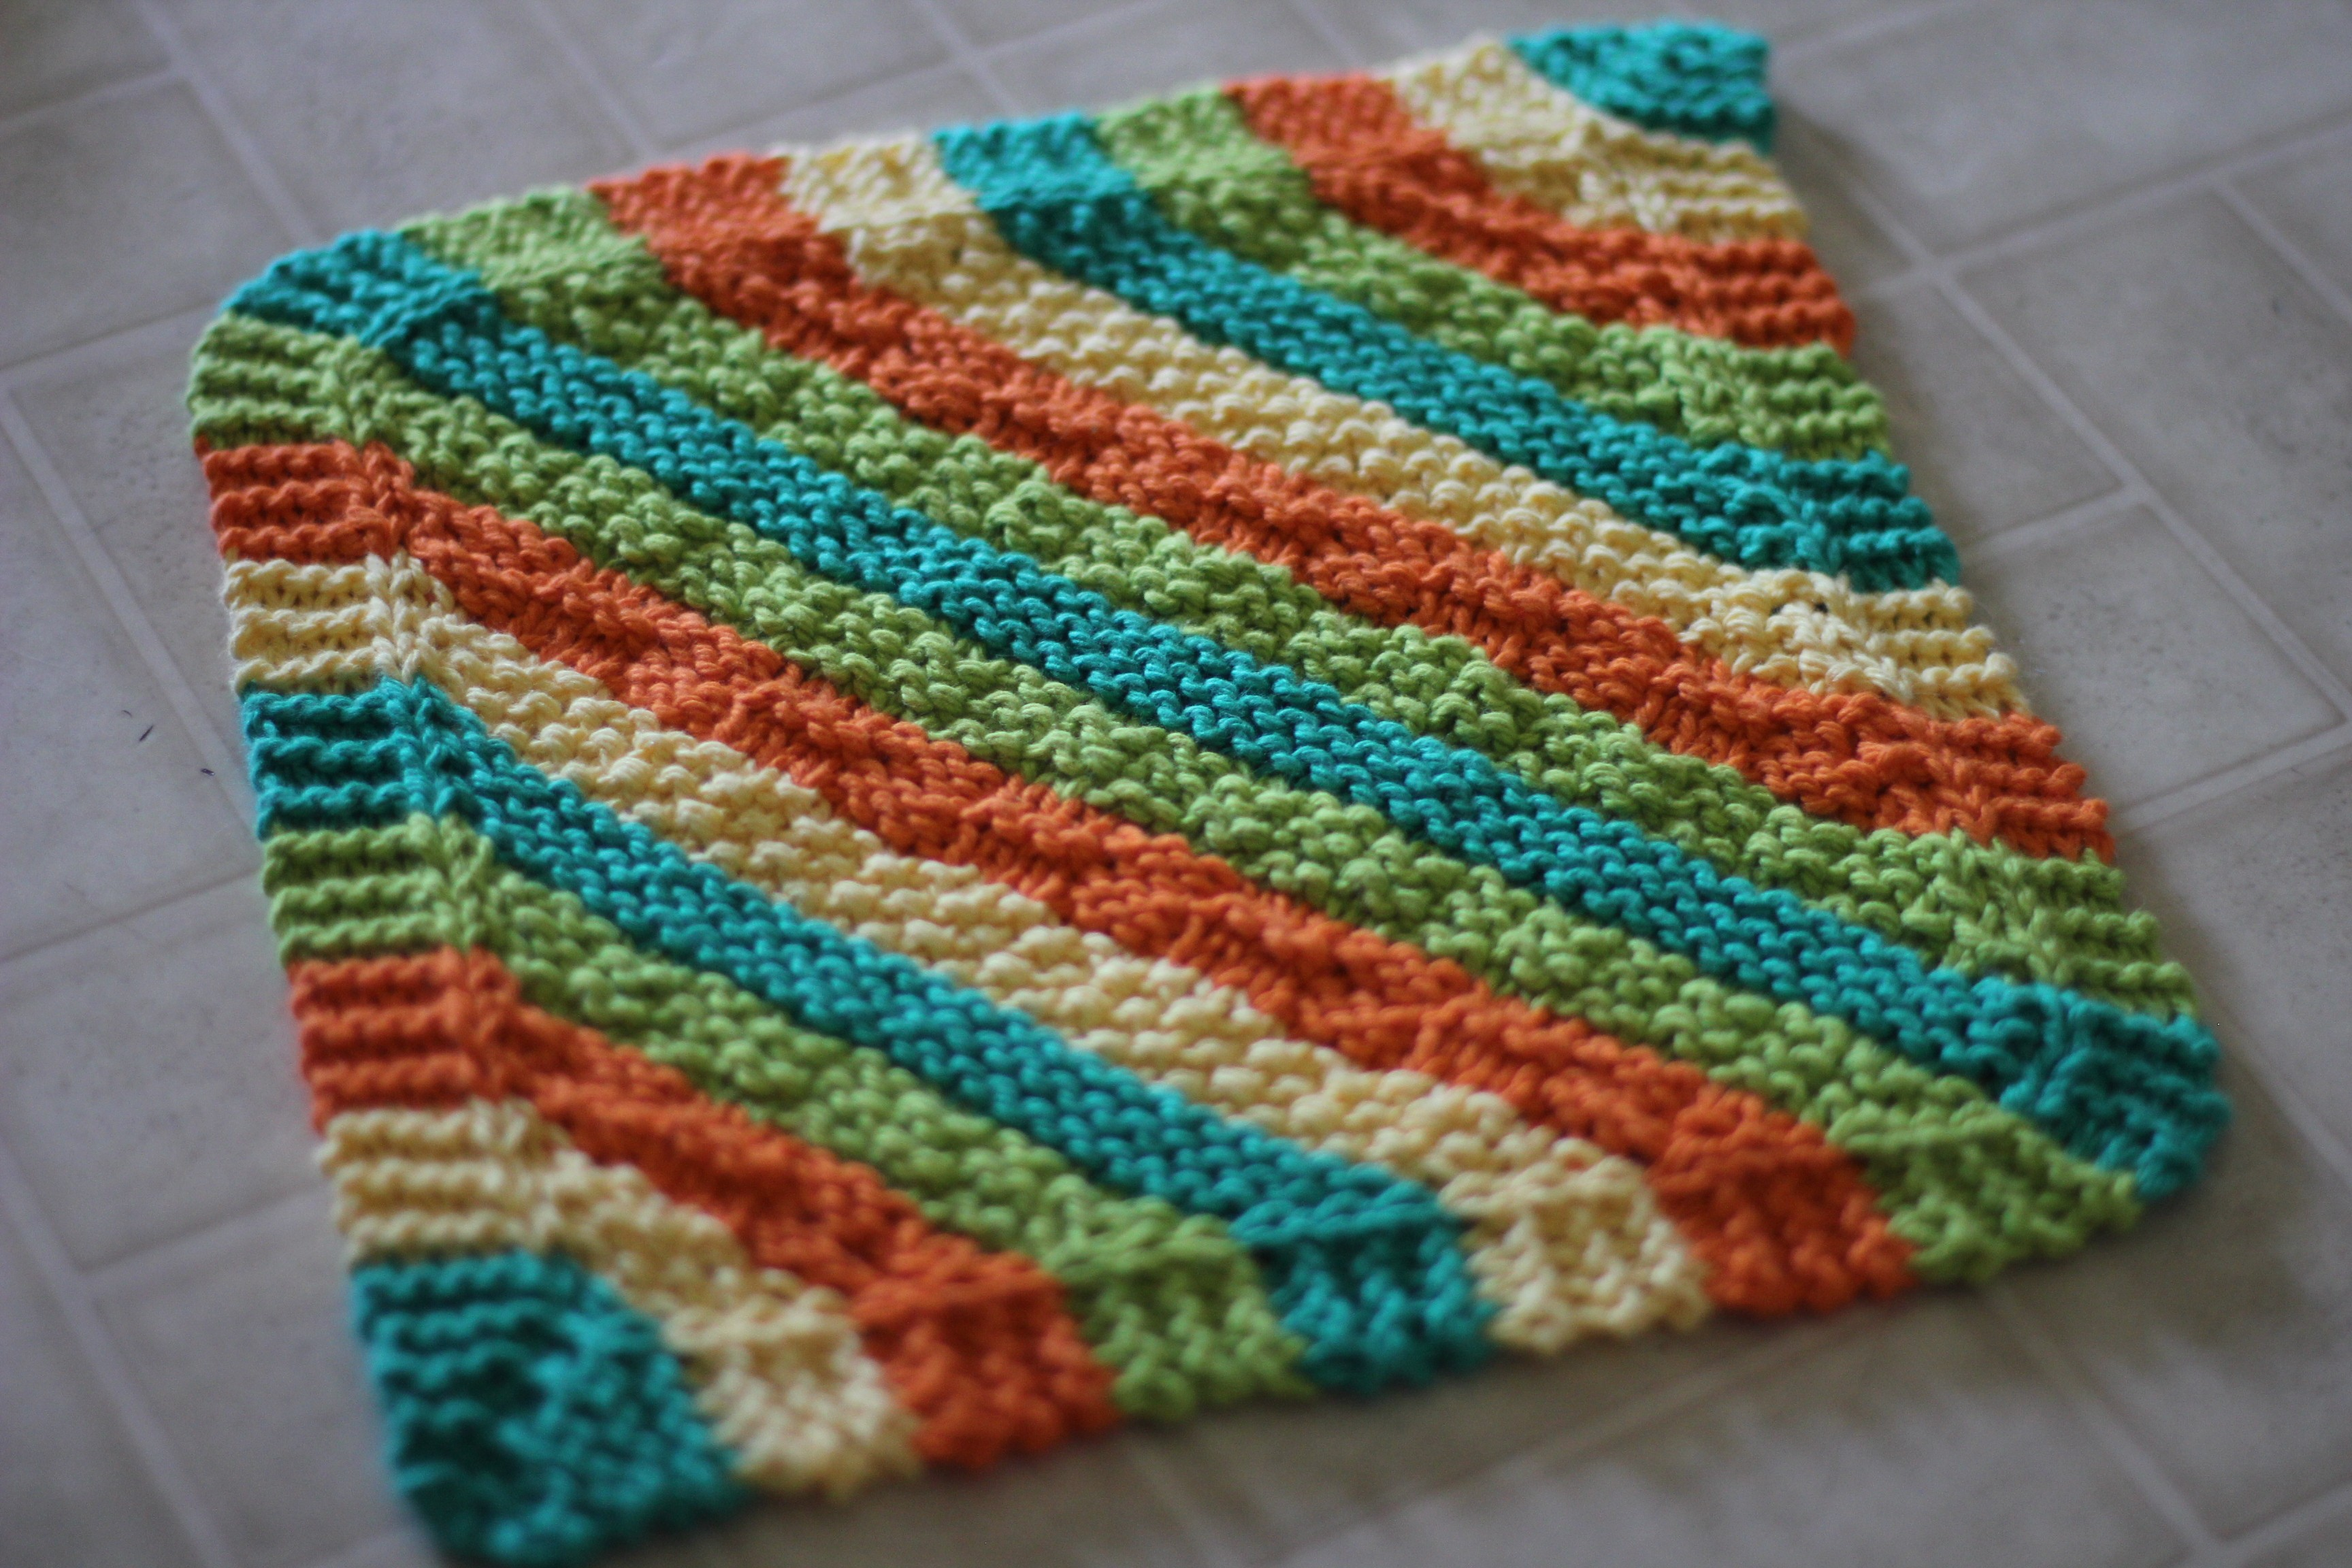 Knitting A Dishcloth Pattern Easy : Chauffage climatisation: Dishcloth knitting pattern easy